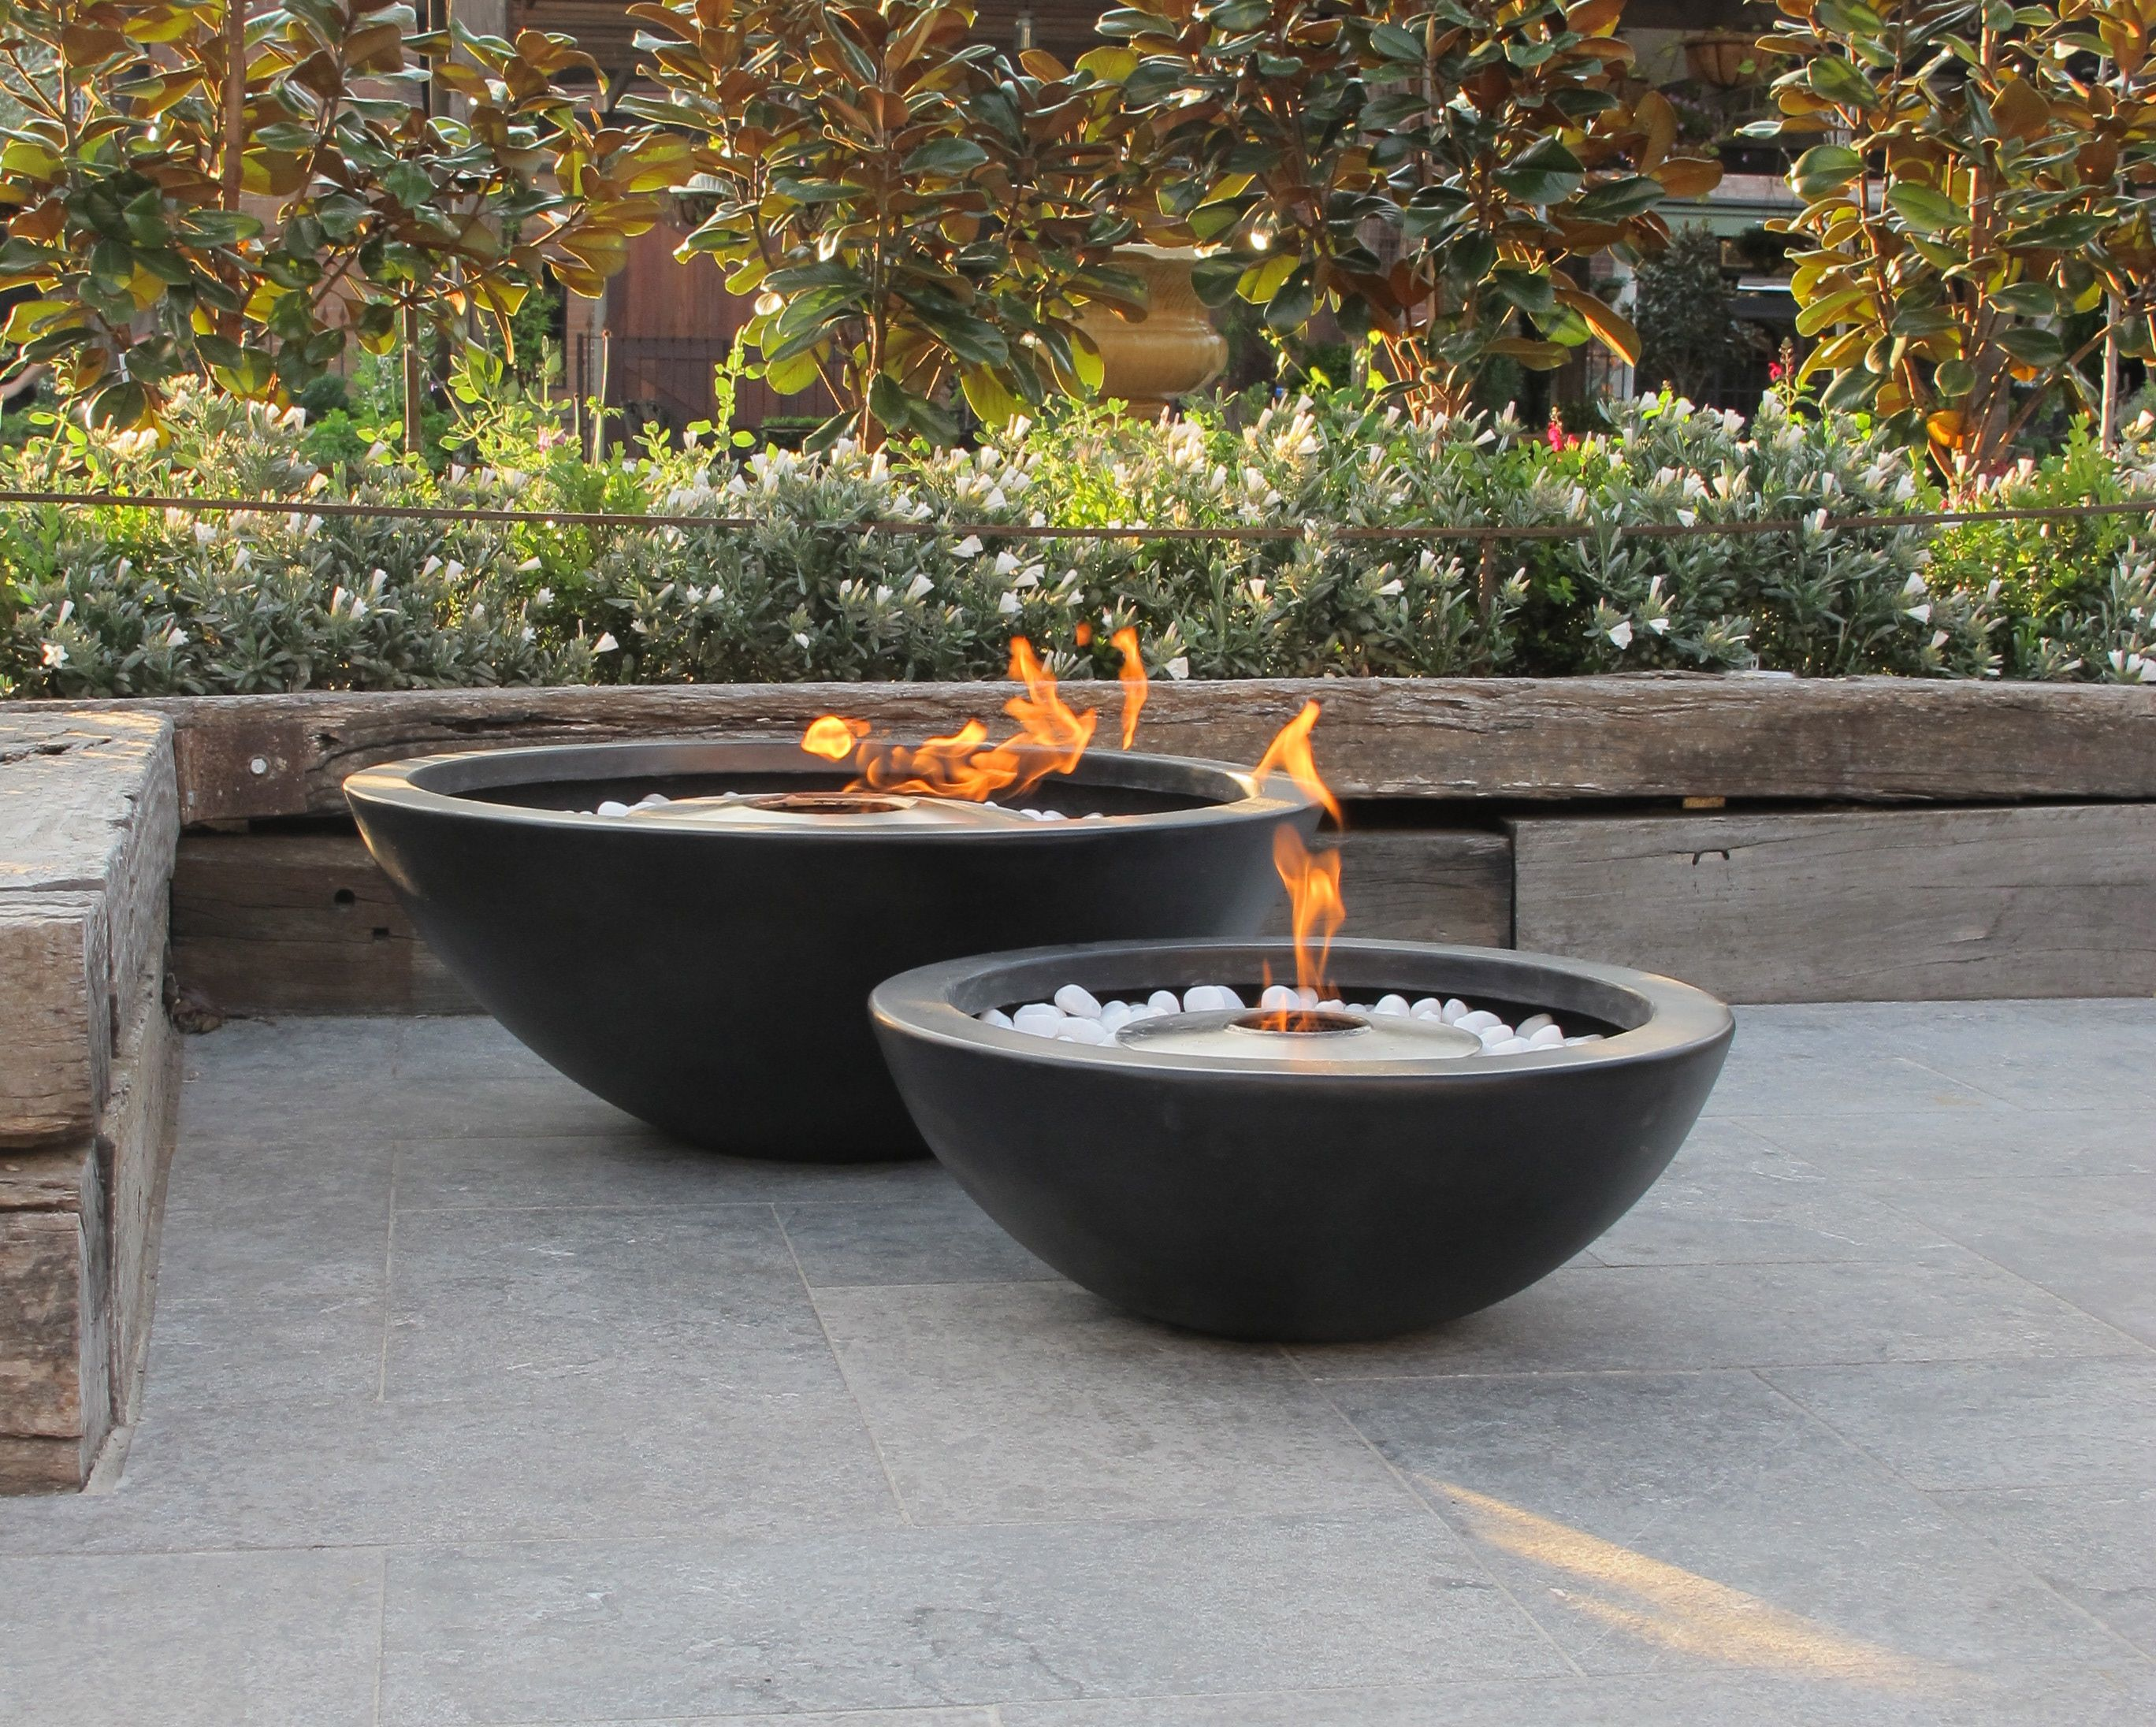 New outdoor MIX Fire Bowls from EcoSmart Fire